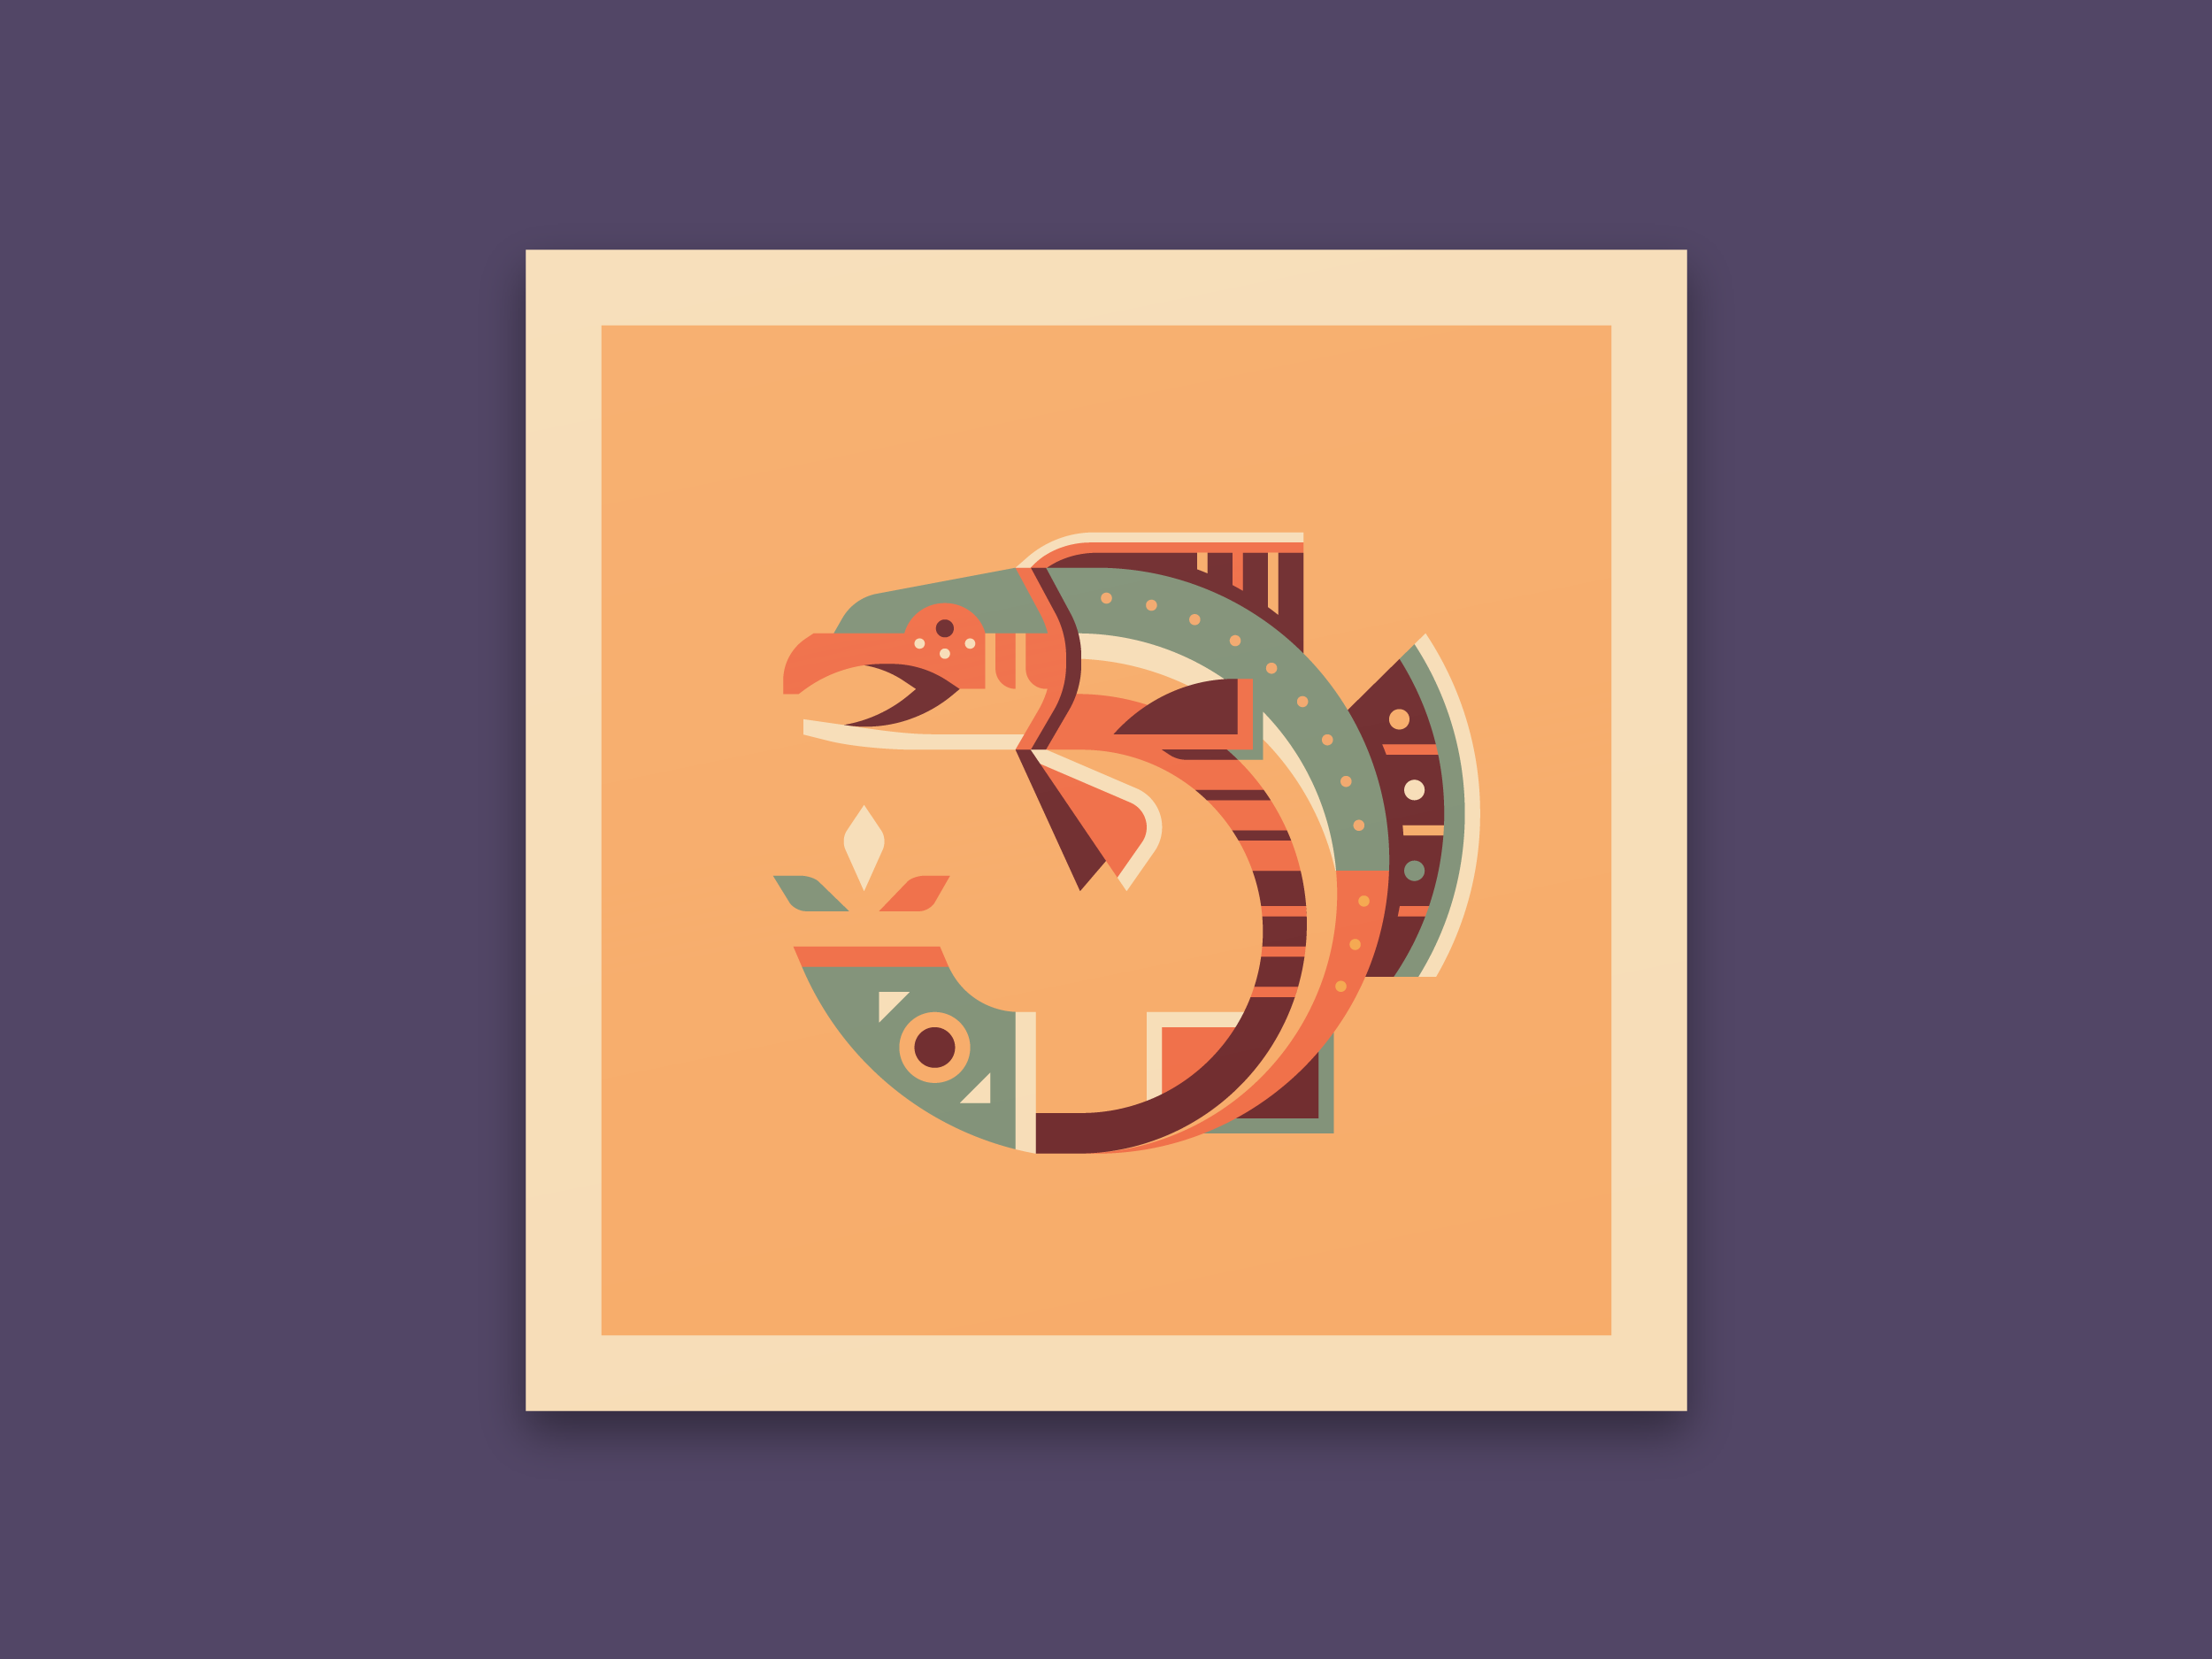 Salmon - Totems print series by Canopy Design and Illustration